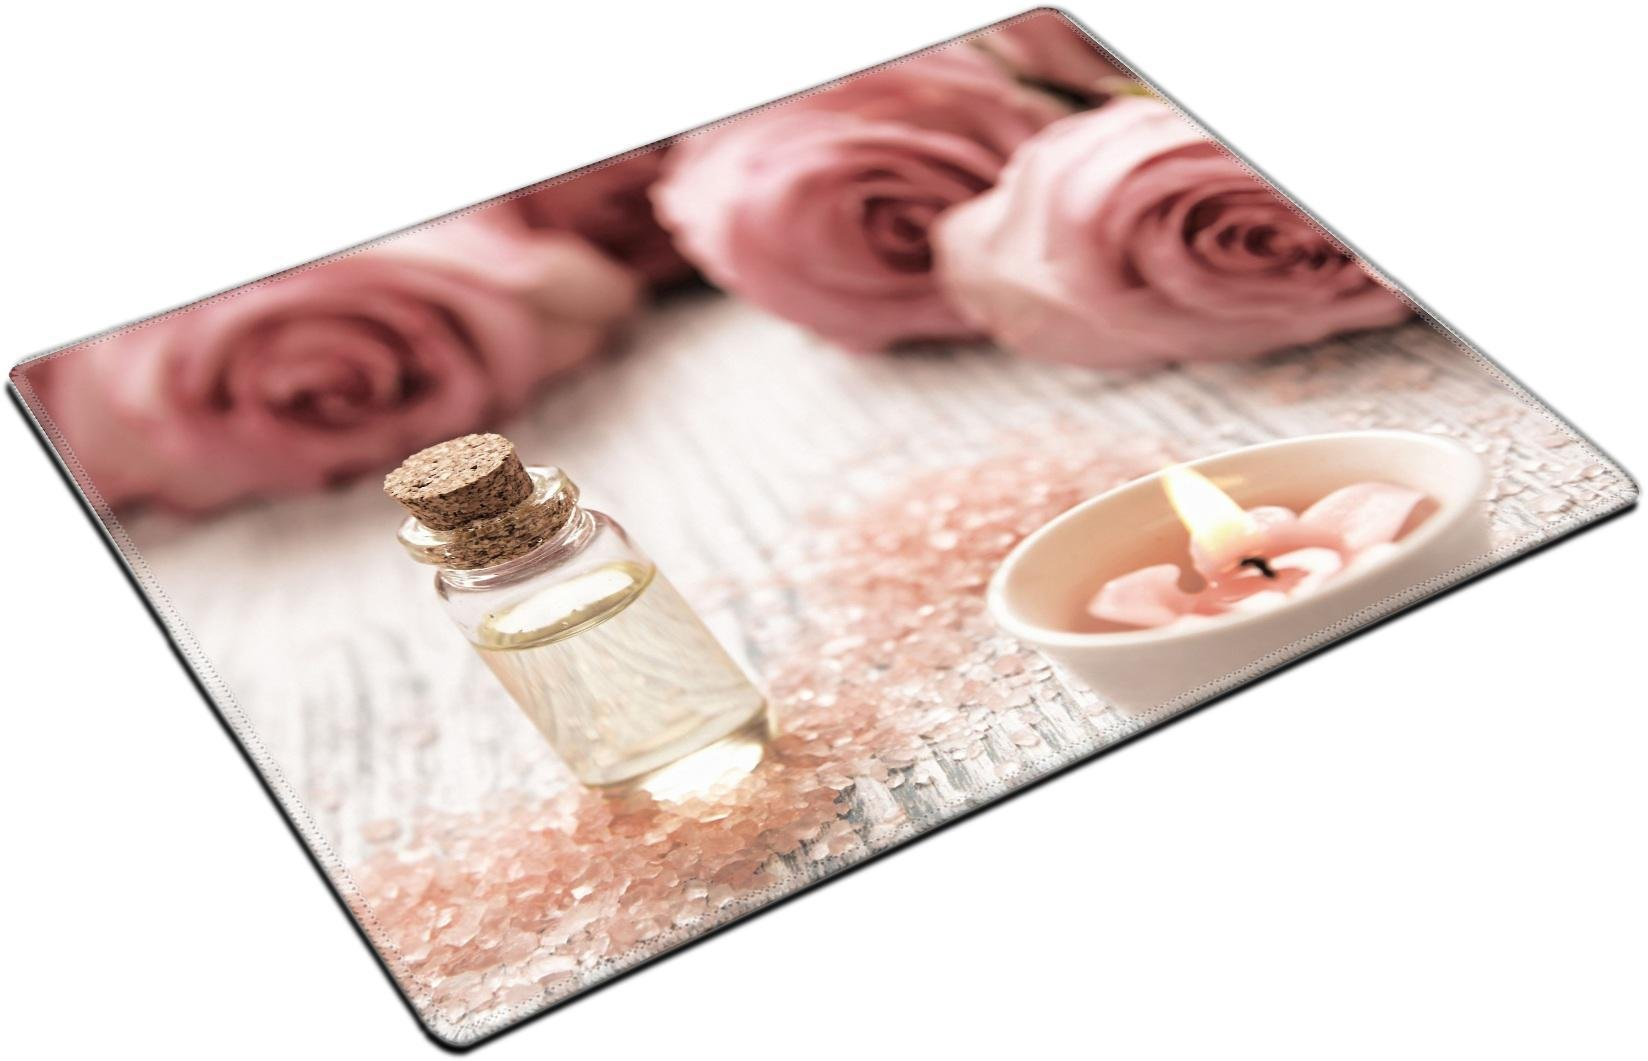 MSD Place Mat Non-Slip Natural Rubber Desk Pads design 35836449 Spa theme with candles and flowers on wooden background